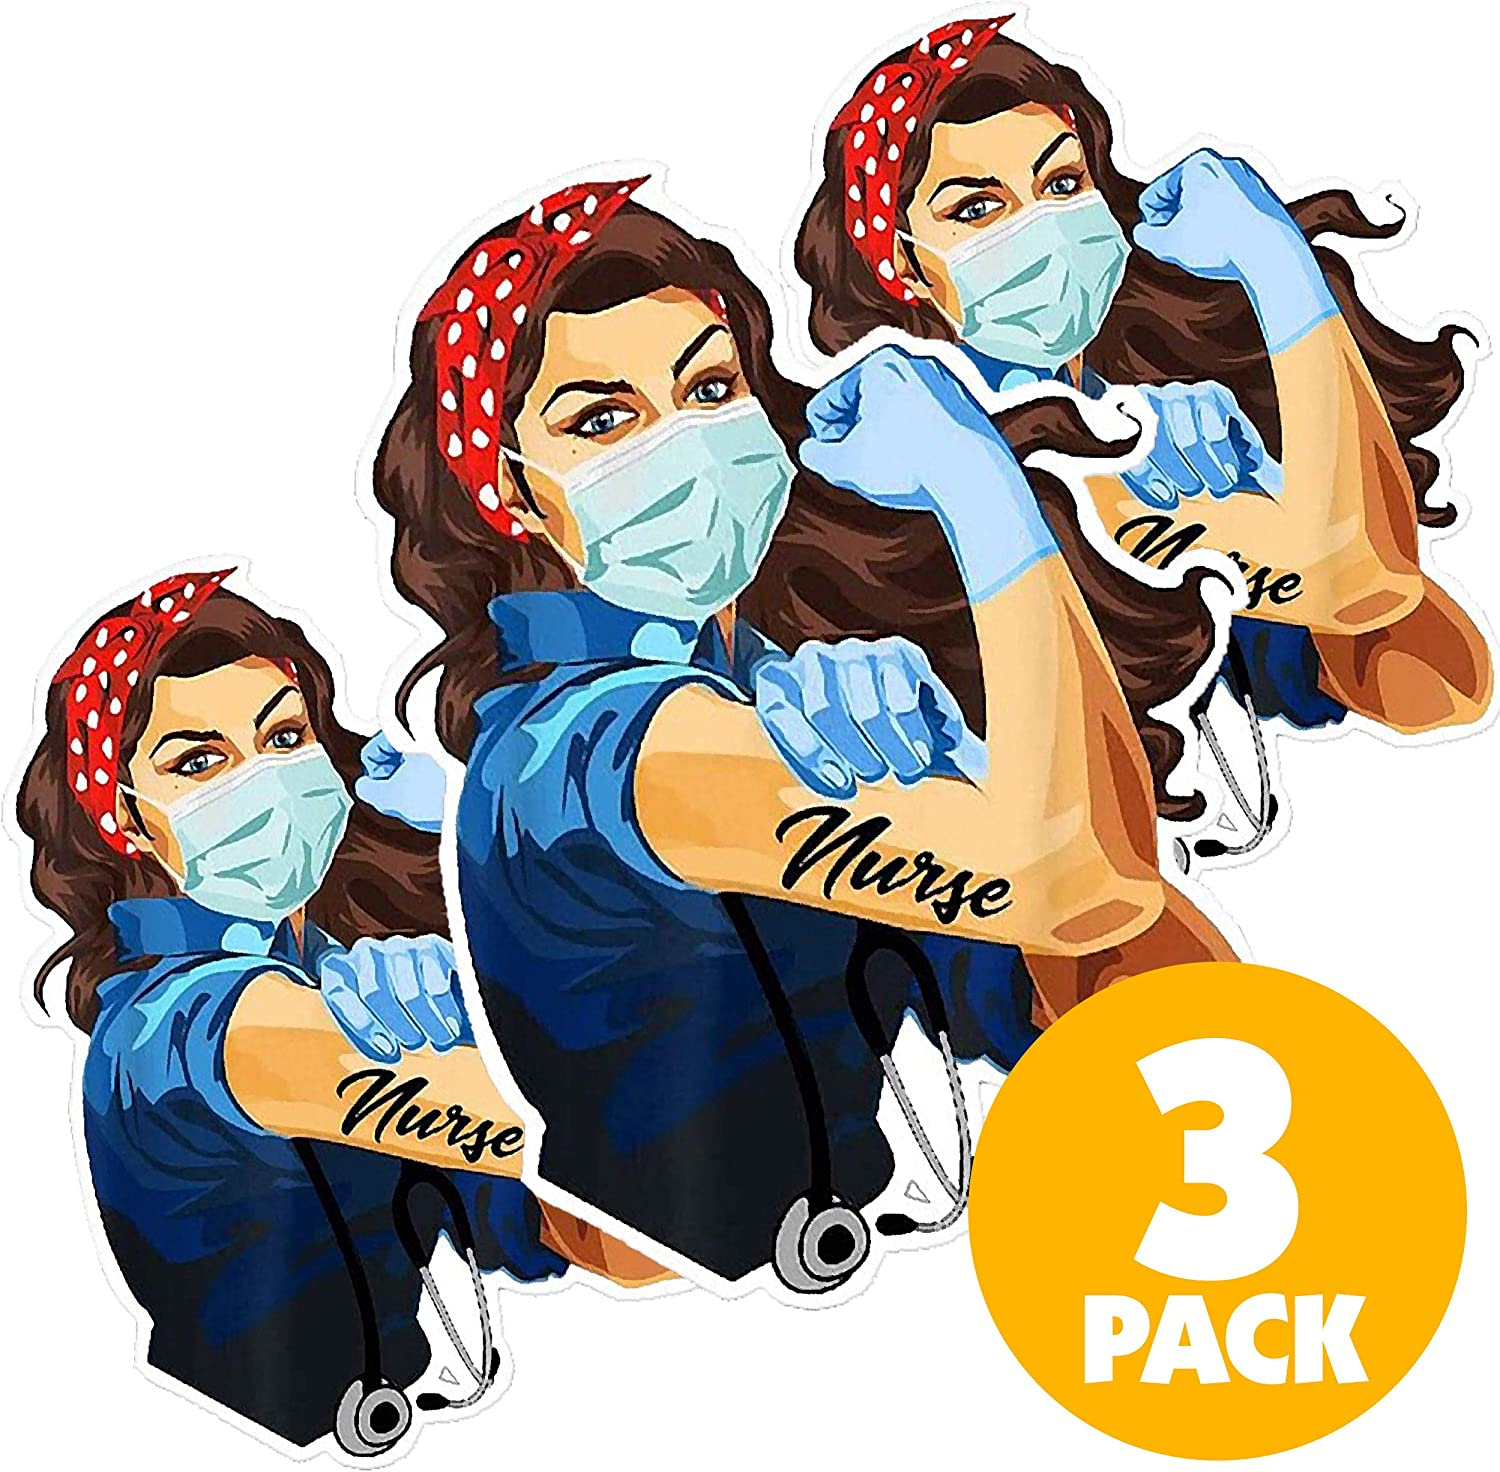 Nurse Laptop Stickers (3 Count) Vinyl Stickers for Hydro Flask to Honor Our Heroes - Waterproof Water Bottle Stickers, Aesthetic Stickers, Scrapbooking Stickers for Adults, Teens and Kids